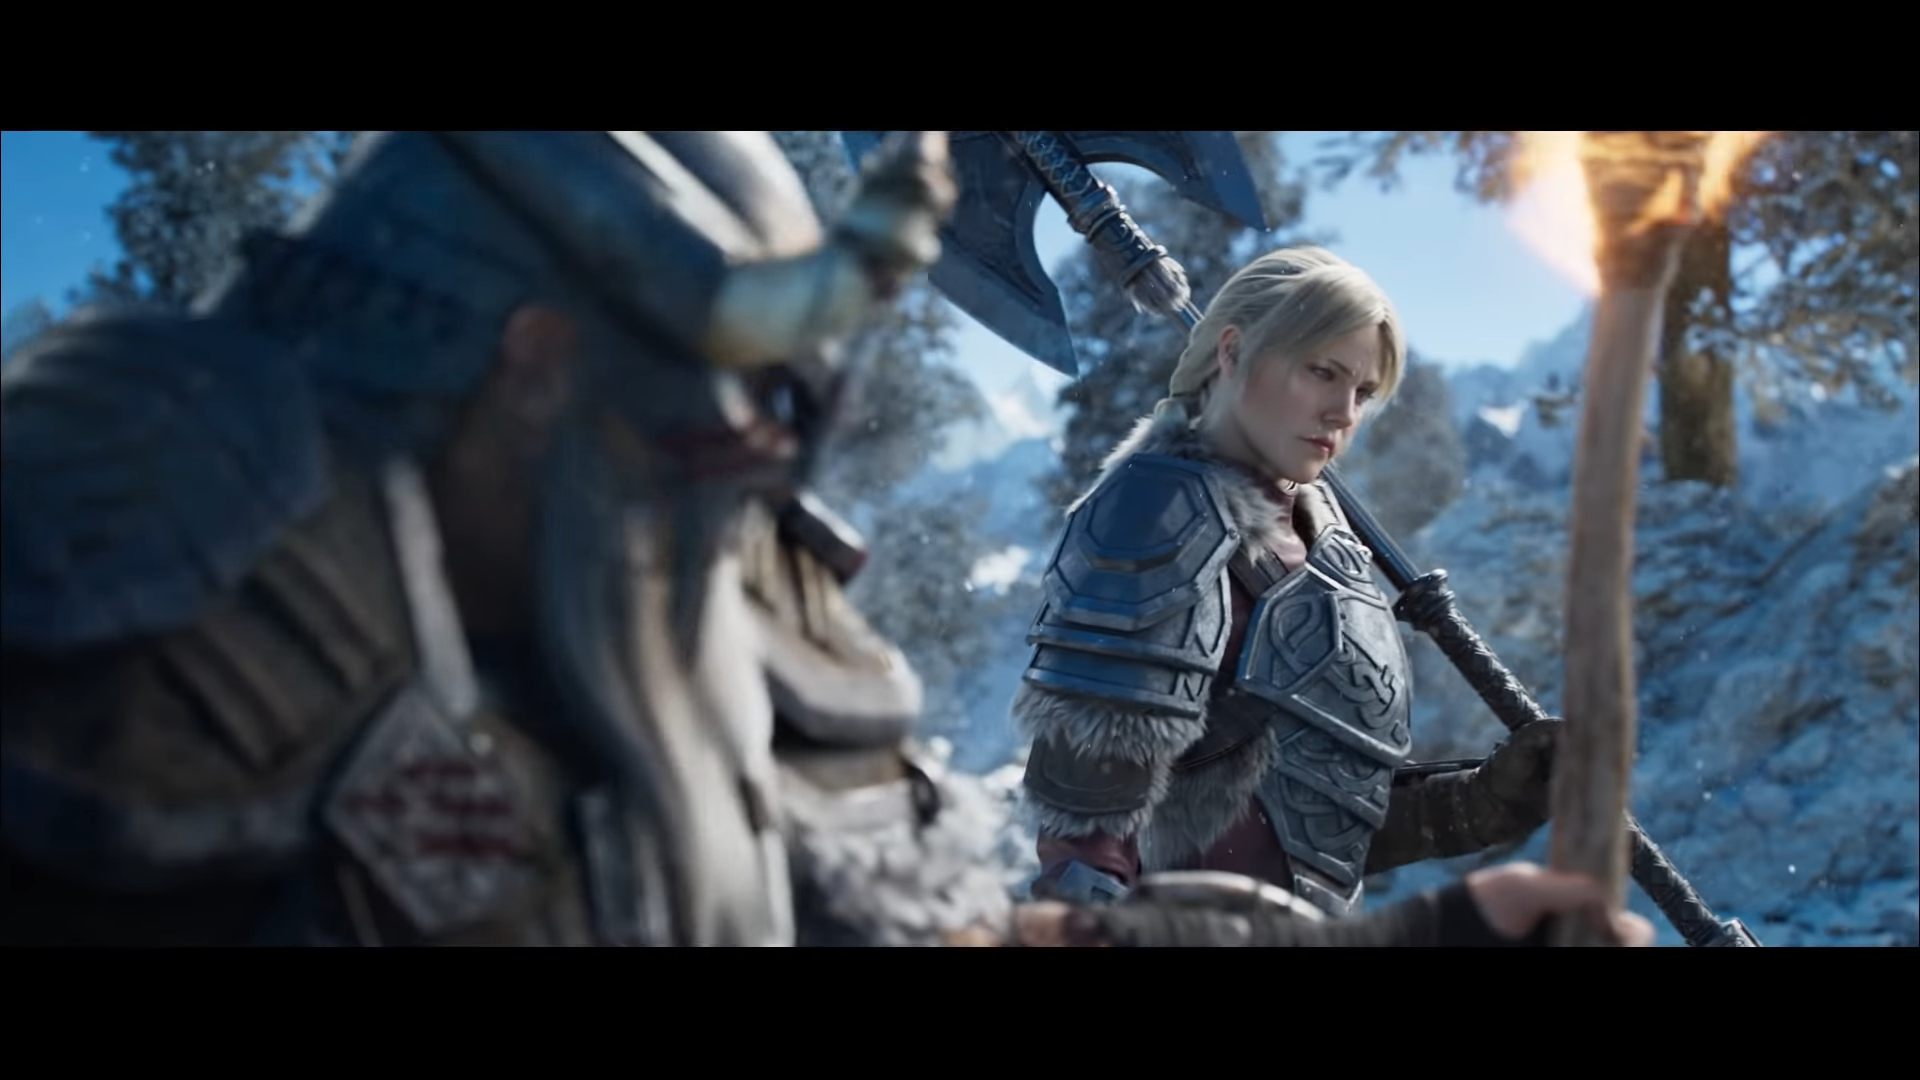 The Elder Scrolls Online – The Dark Heart of Skyrim Launch Cinematic Revealed On Youtube Alongside New DLC Live On PC